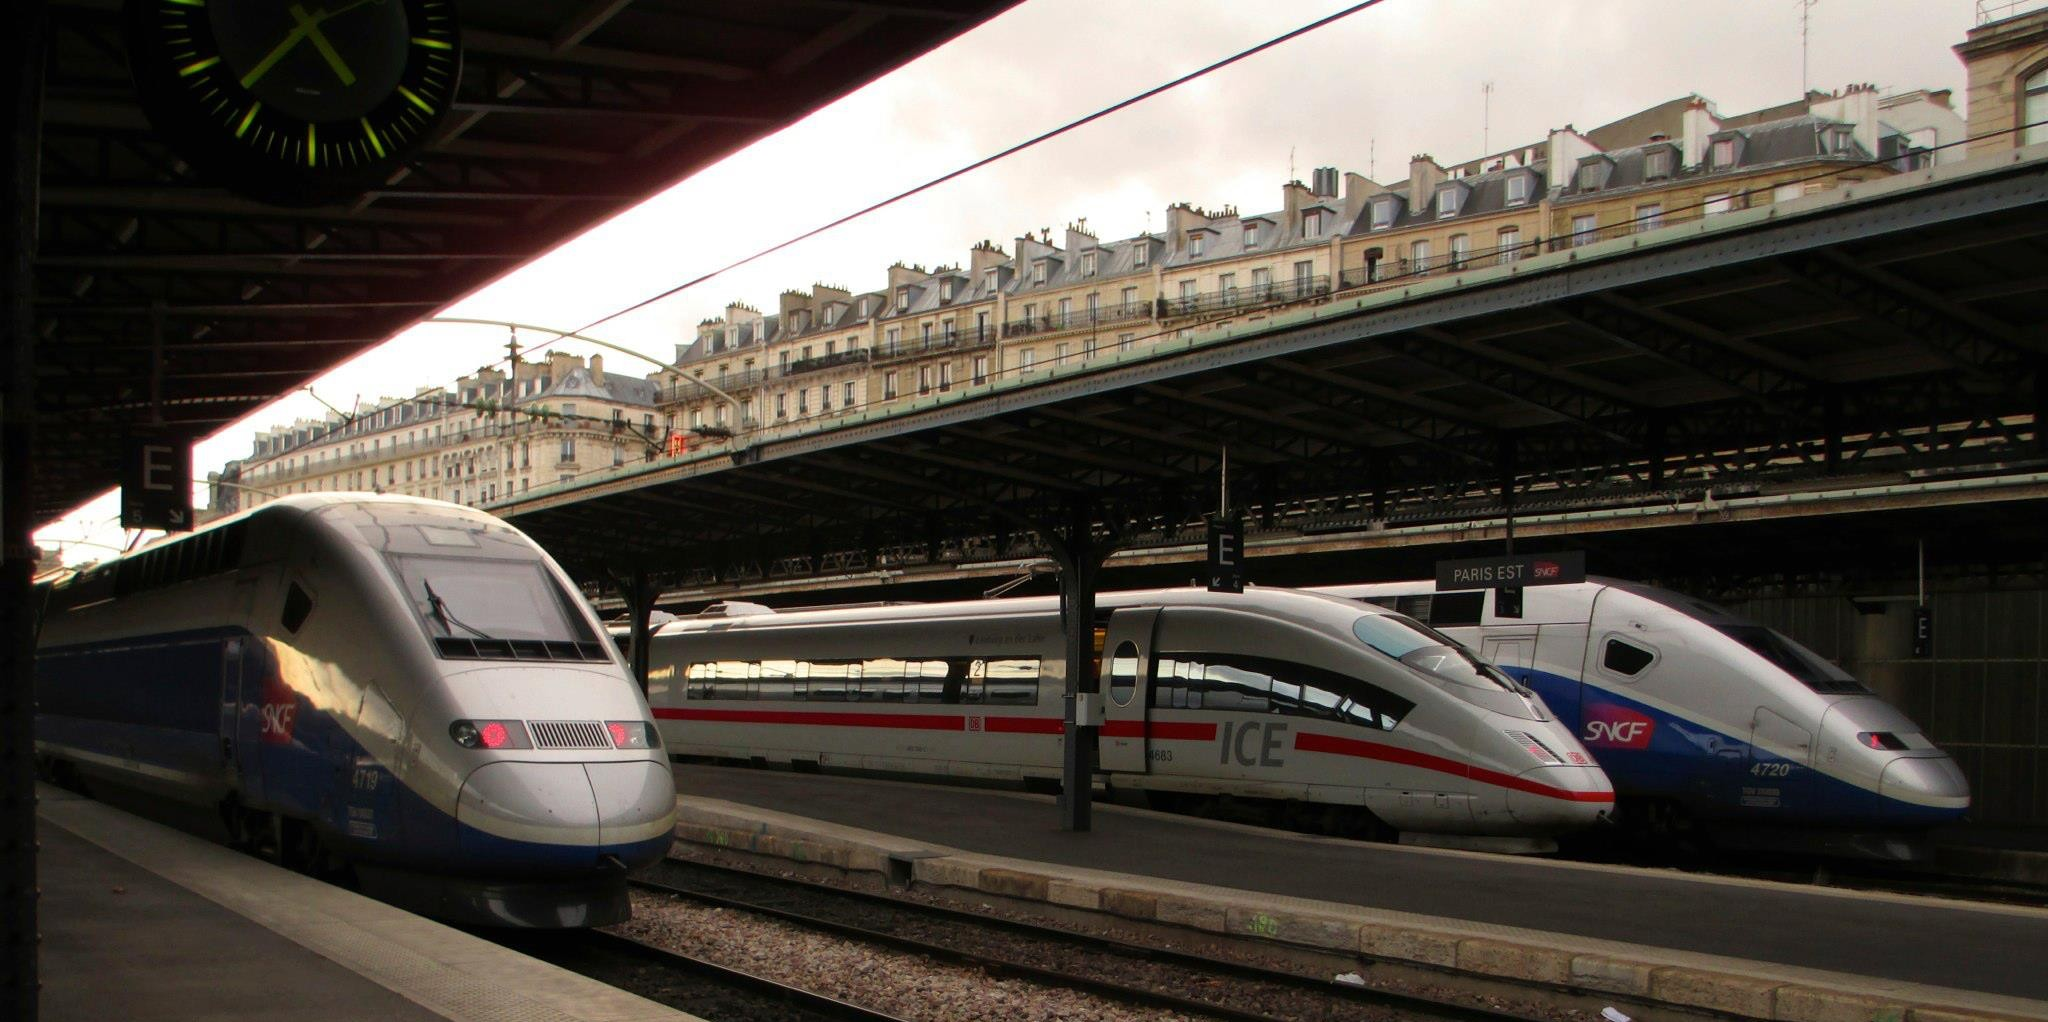 German and Frence high speed trains in Paris. Photo by Ryan Stern